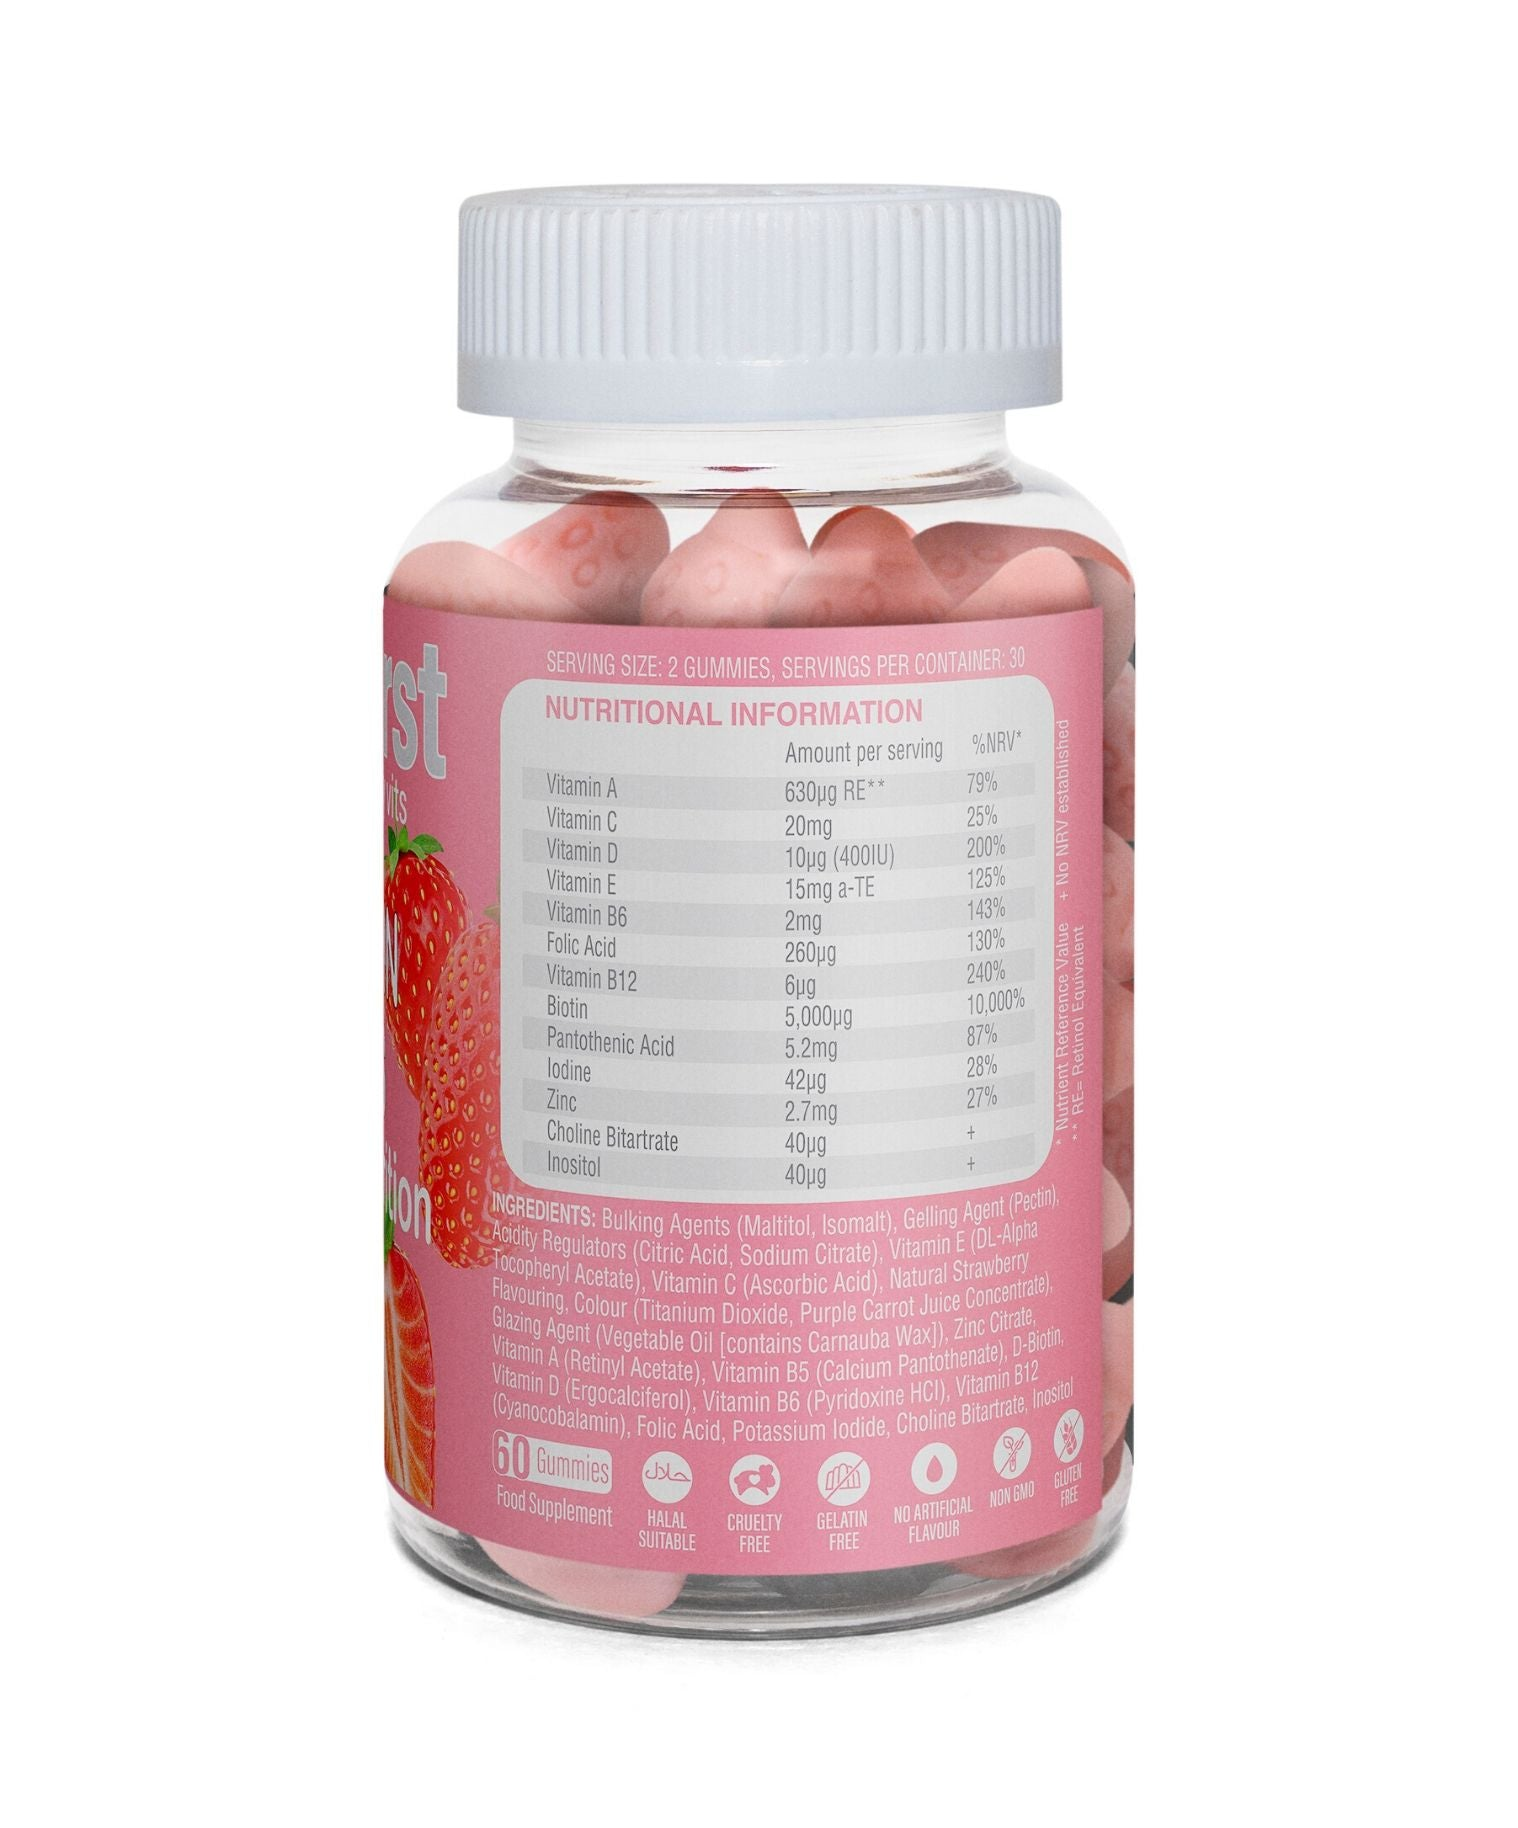 Gummies serving size and nutritional information. Vitamin C, Vitamin E, Biotin, Zinc, Vitamin A